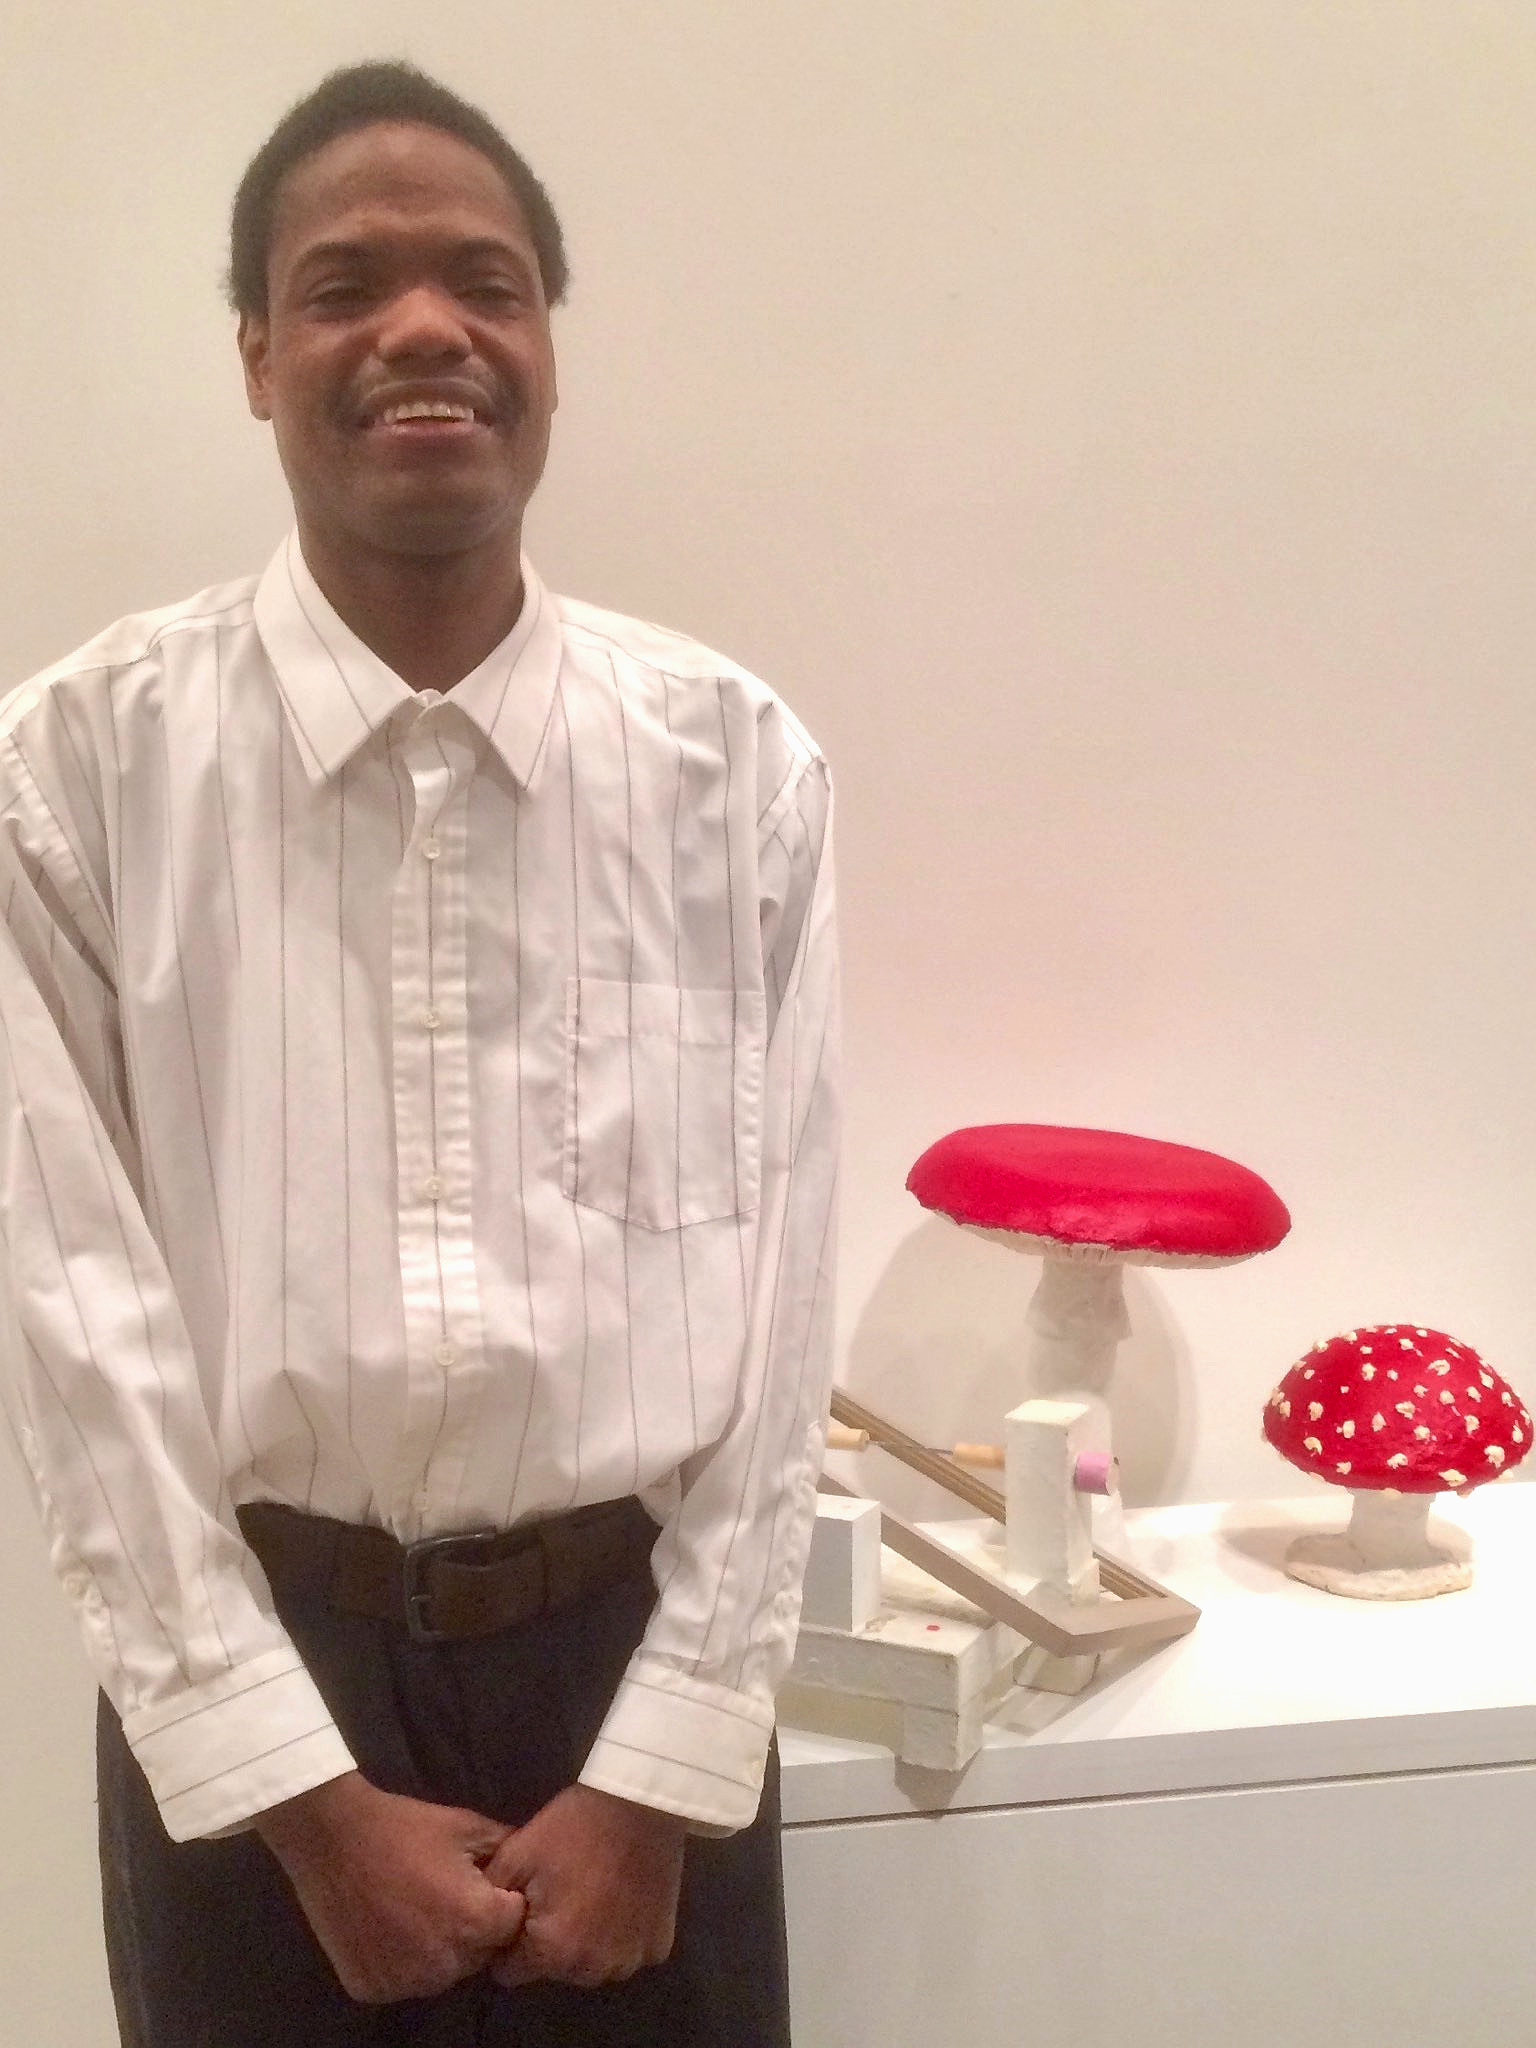 Lawrence wearing a white button-down shirt and standing next to his red-cap mushroom sculptures at a gallery opening reception. Photo courtesy of the artist.